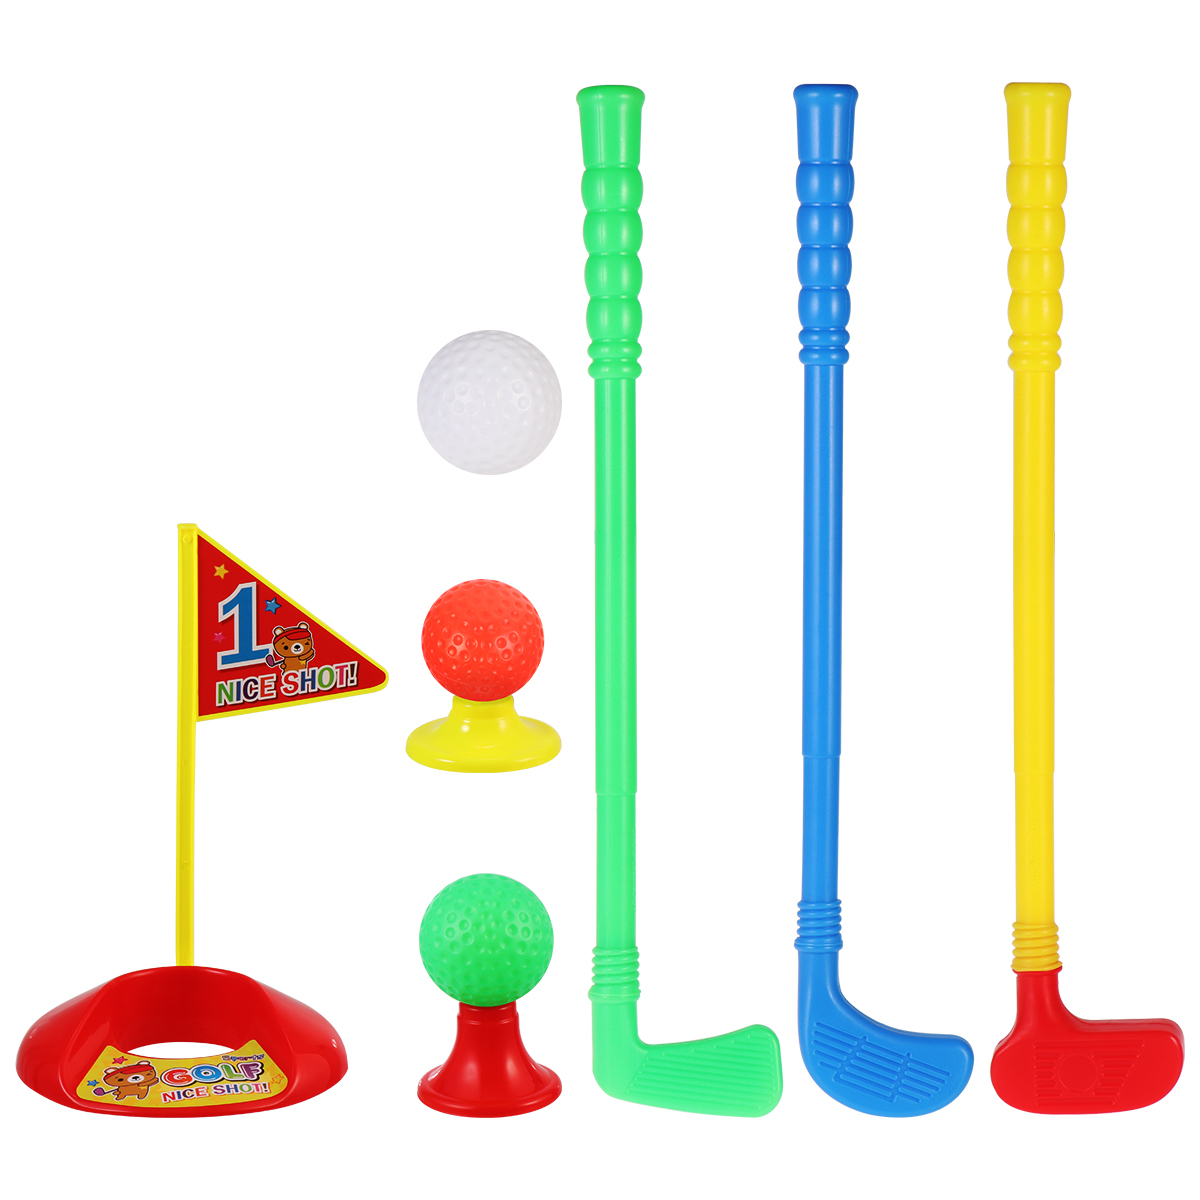 LIOOBO 1 Set Golf Club Suit ABS Creative High-quality Outdoor Parent-child Toys Golf Club Toy For Kids Children Boys